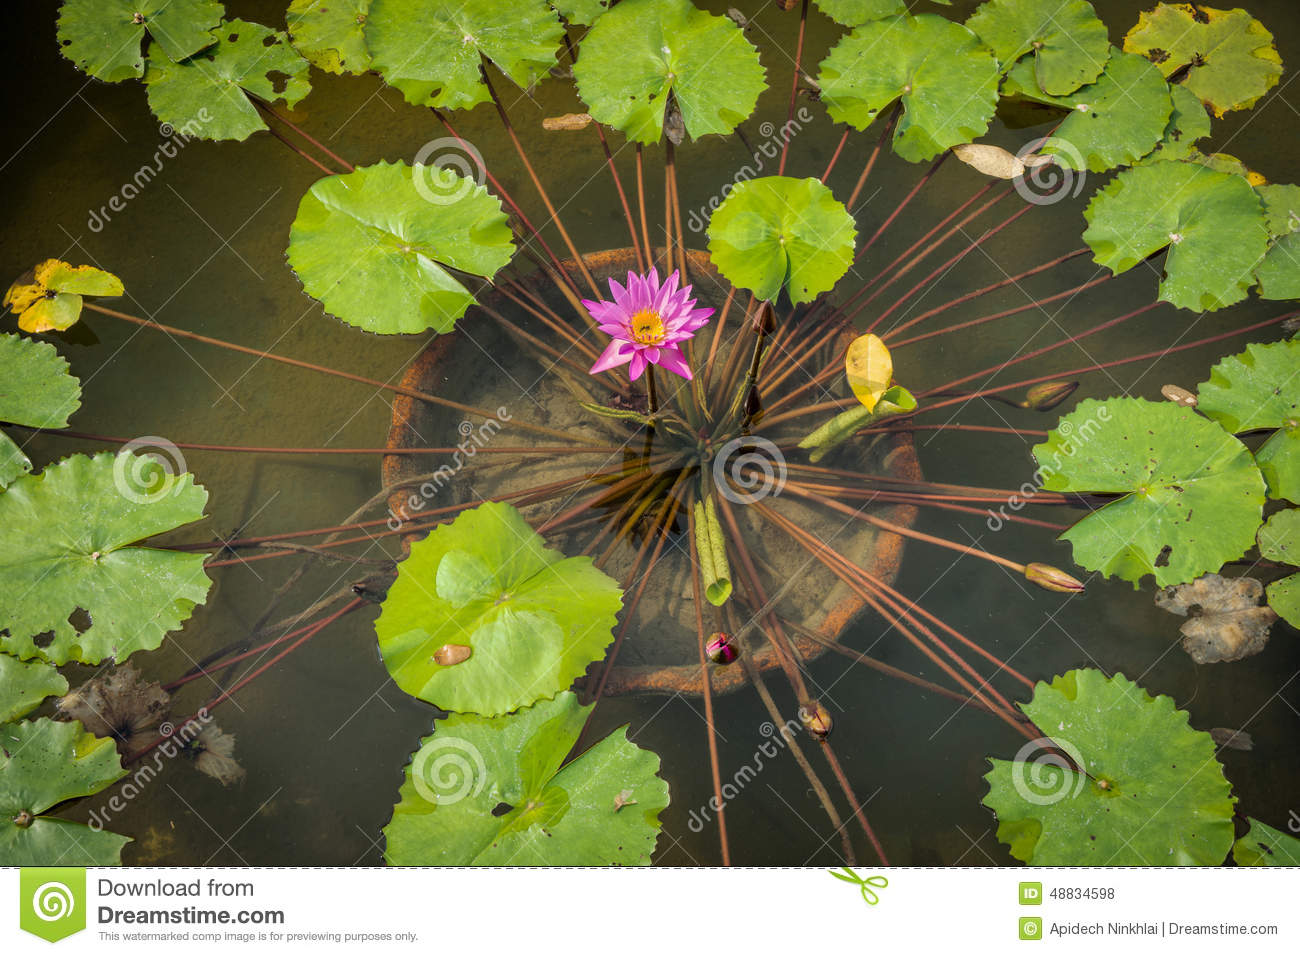 Nymphaea Caerulea Flower And Leaves In A Pond Stock Photo.